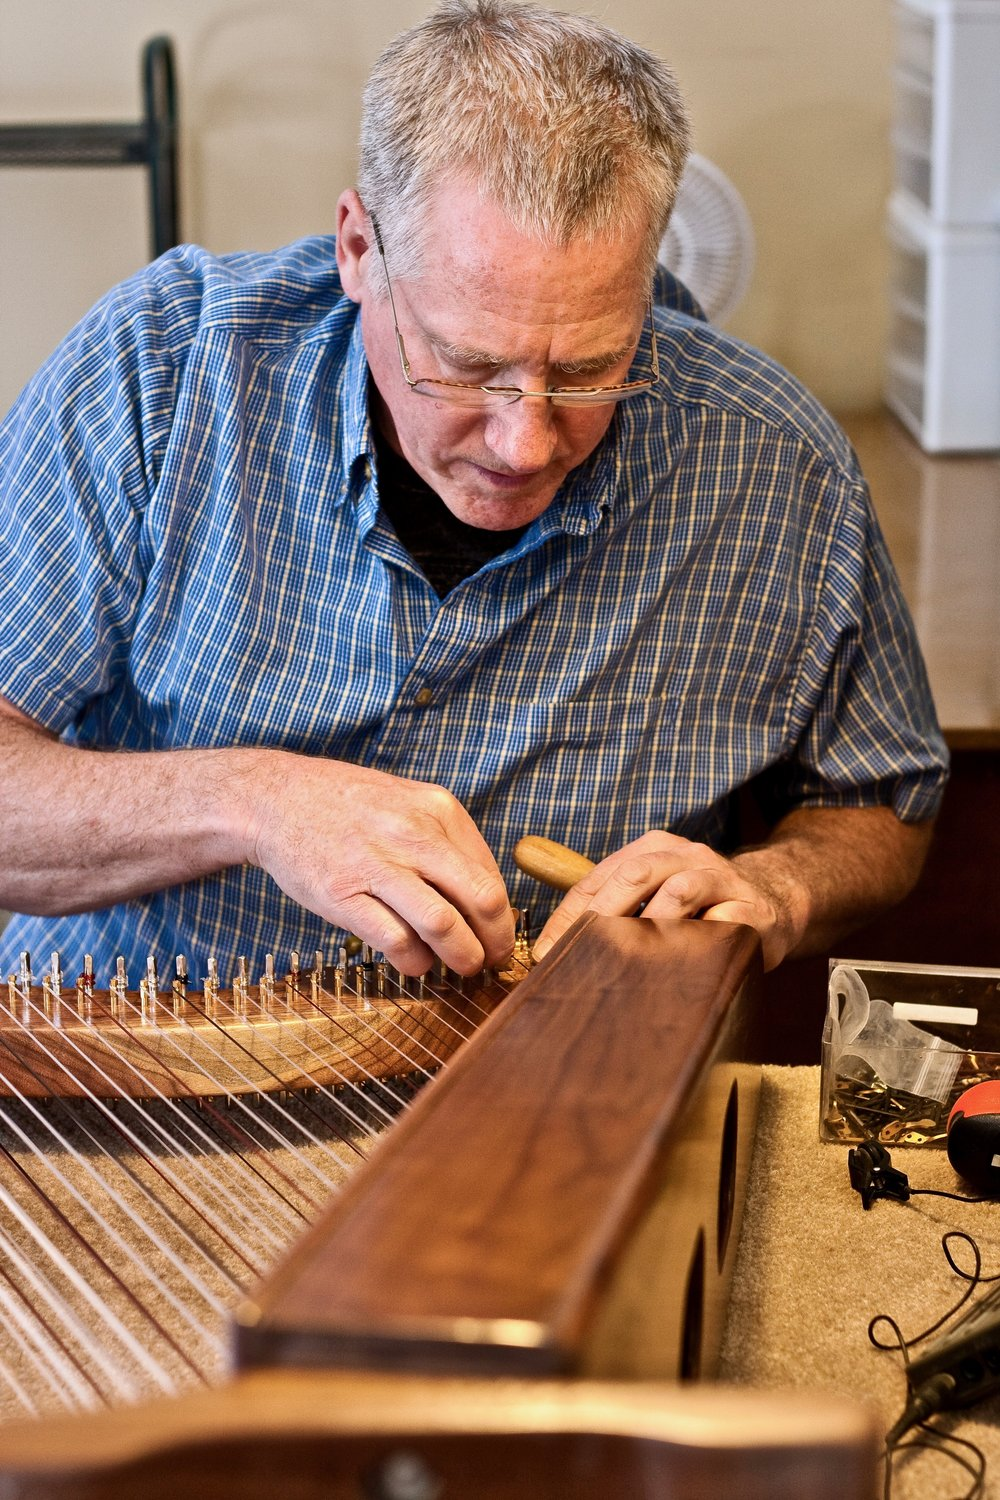 William Rees beginning the process of adding levers to a nearly completed harp.